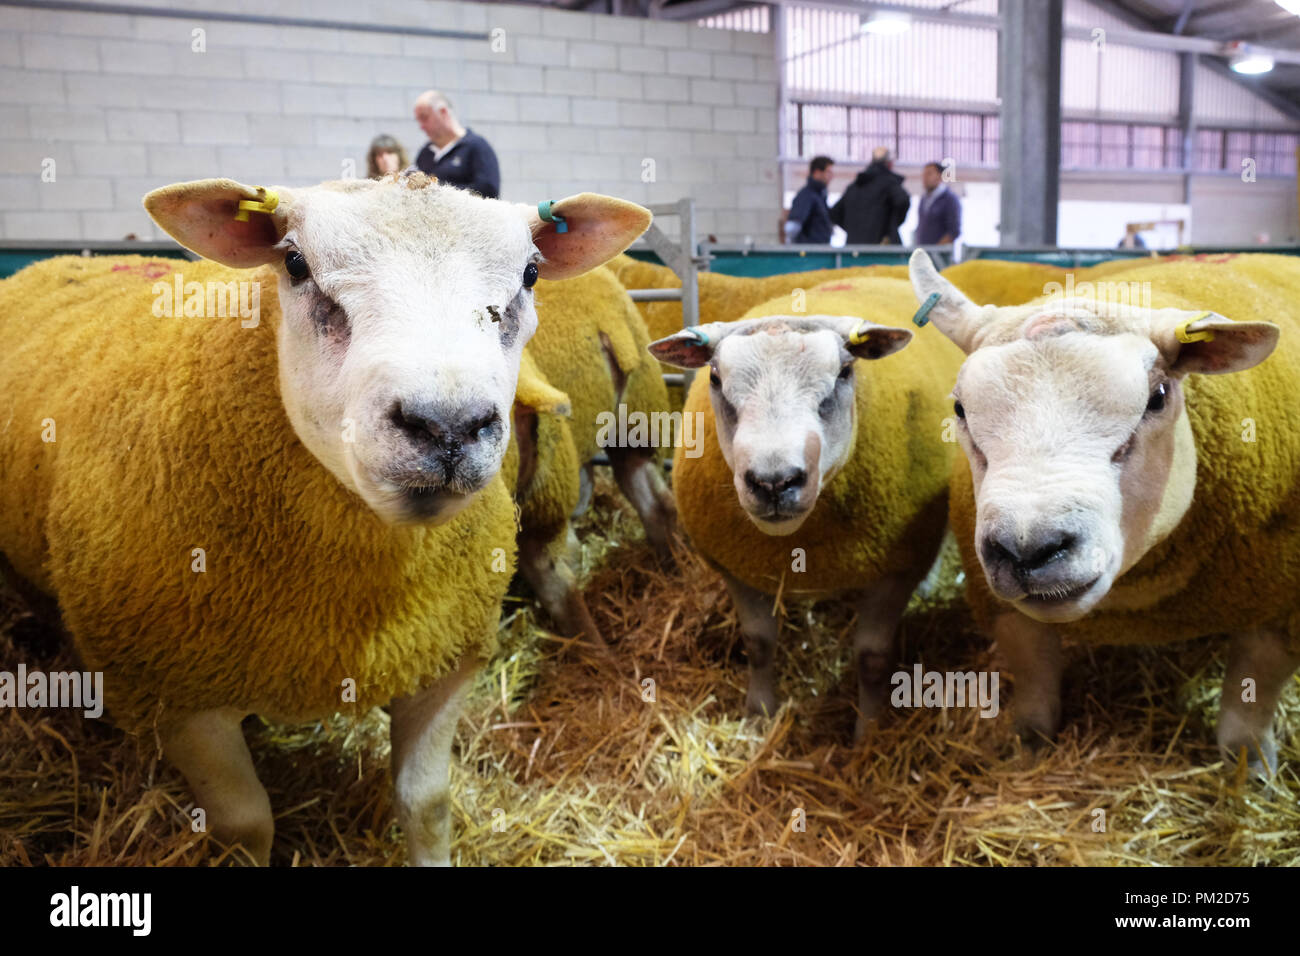 Royal Welsh Showground, Builth Wells, Powys, Wales - Monday 17th September 2018 - Texel rams look on as they await the start of the auction at the 40th annual National Sheep Association Wales and Border Ram Sales - over 5,000 rams will be auctioned today at this major NSA event. Photo Steven May / Alamy Live News Stock Photo